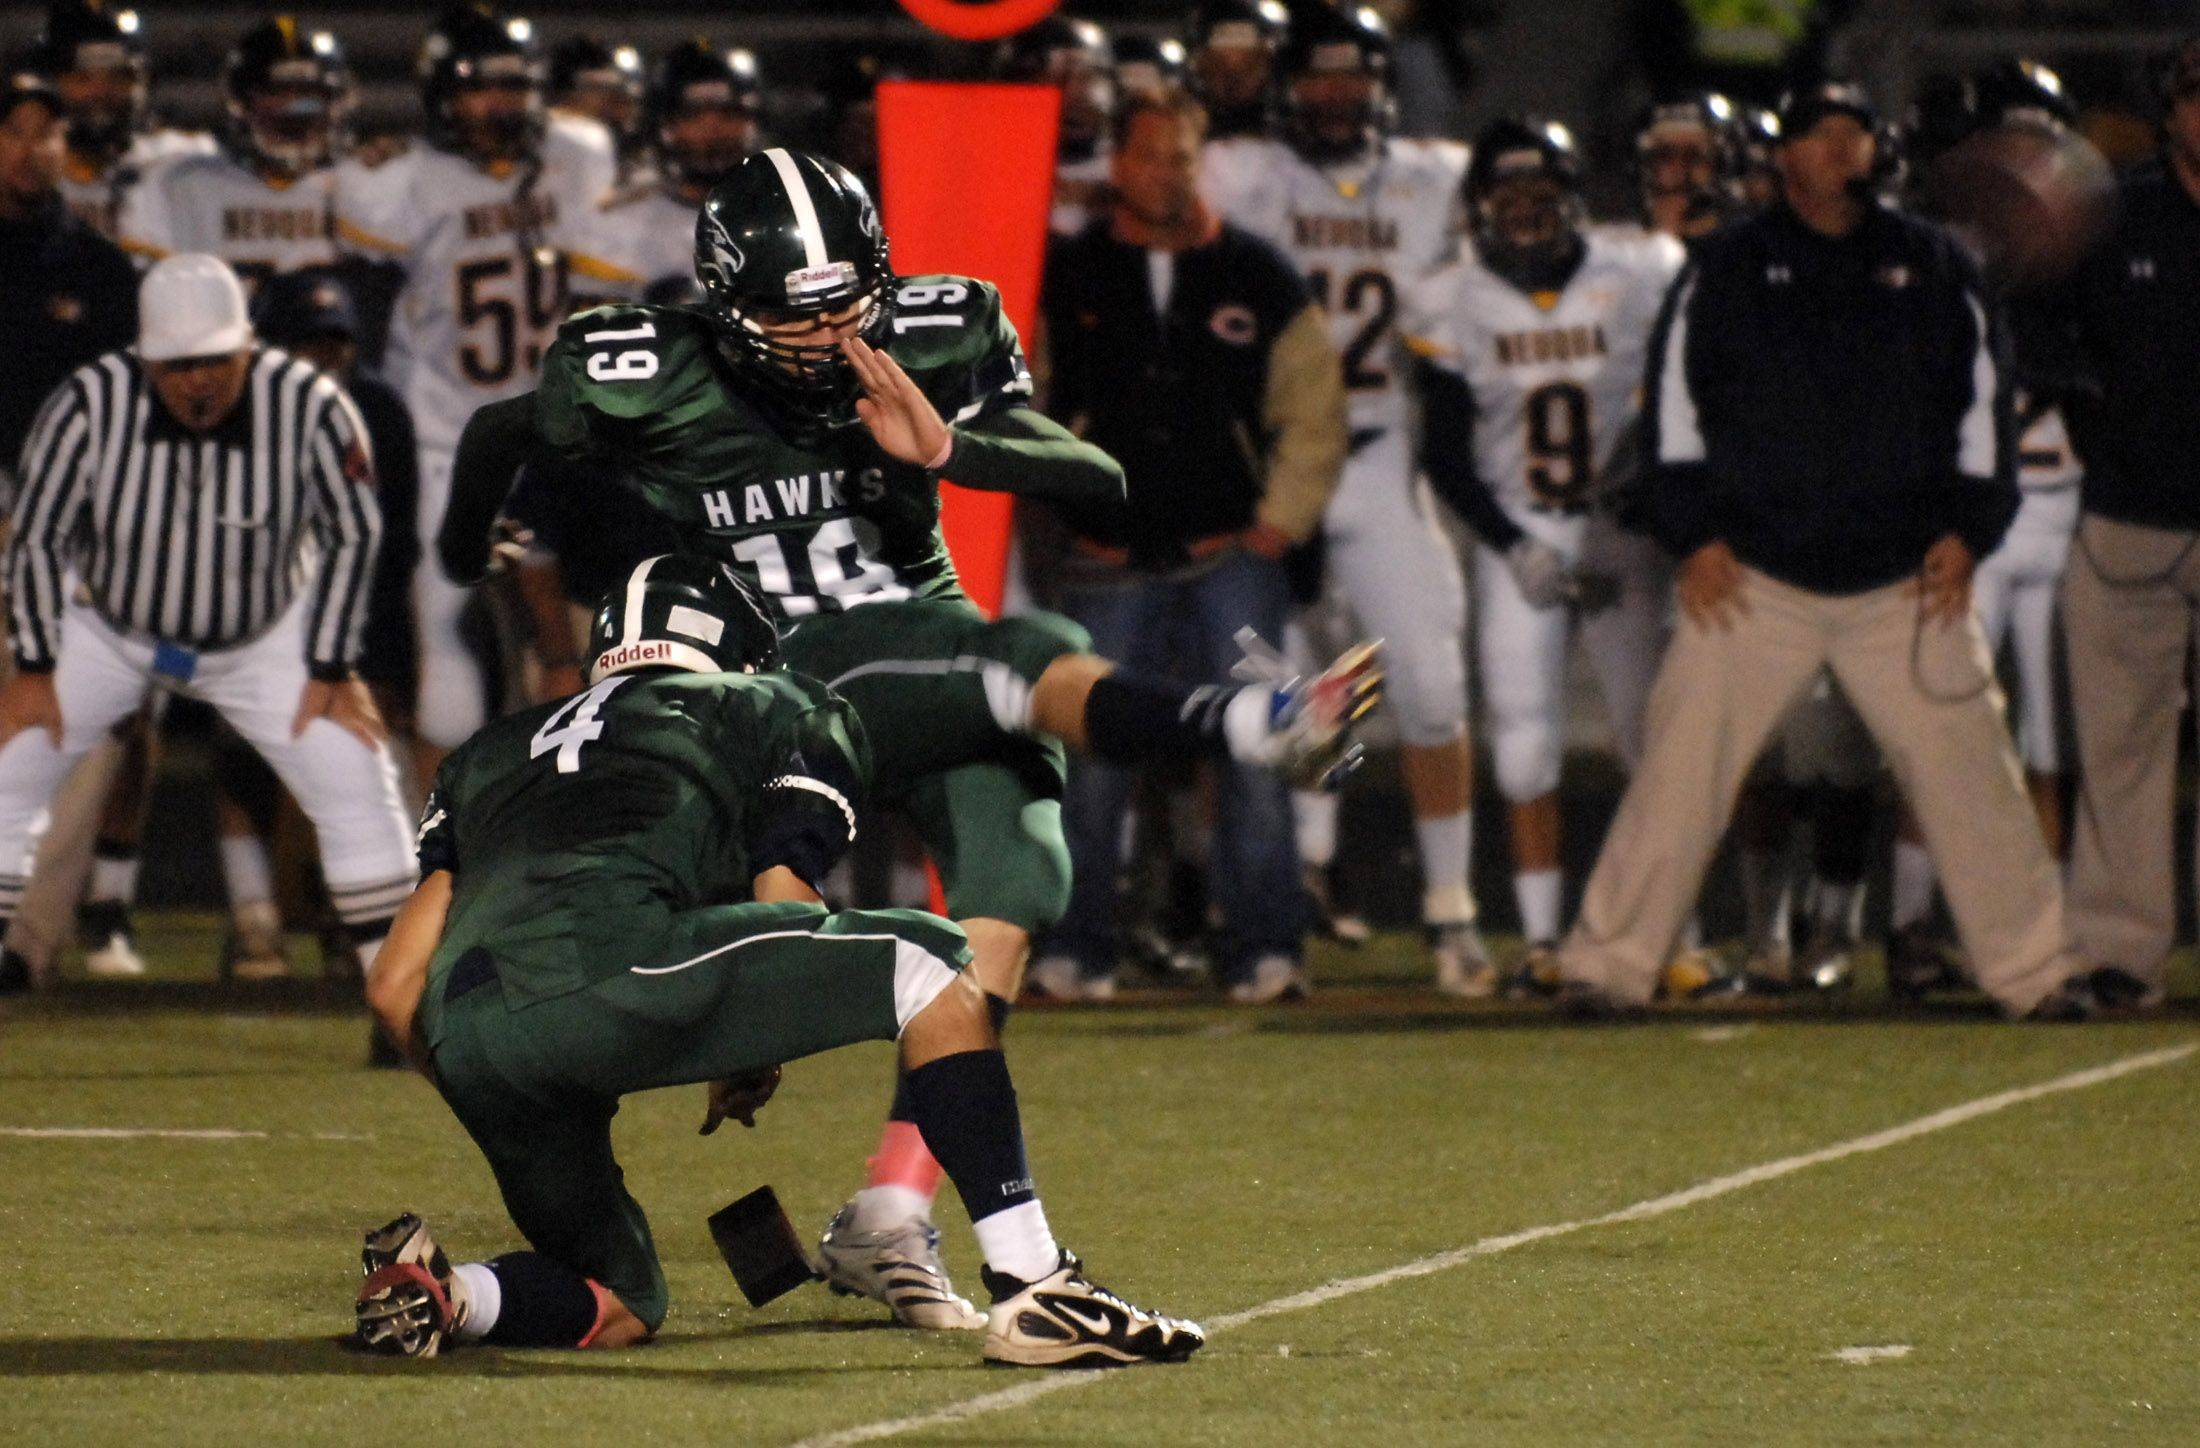 WEEK 8- Bartlett's Ian Dobek kicks what would turn out to be the game-winning field goal against Neuqua Valley .